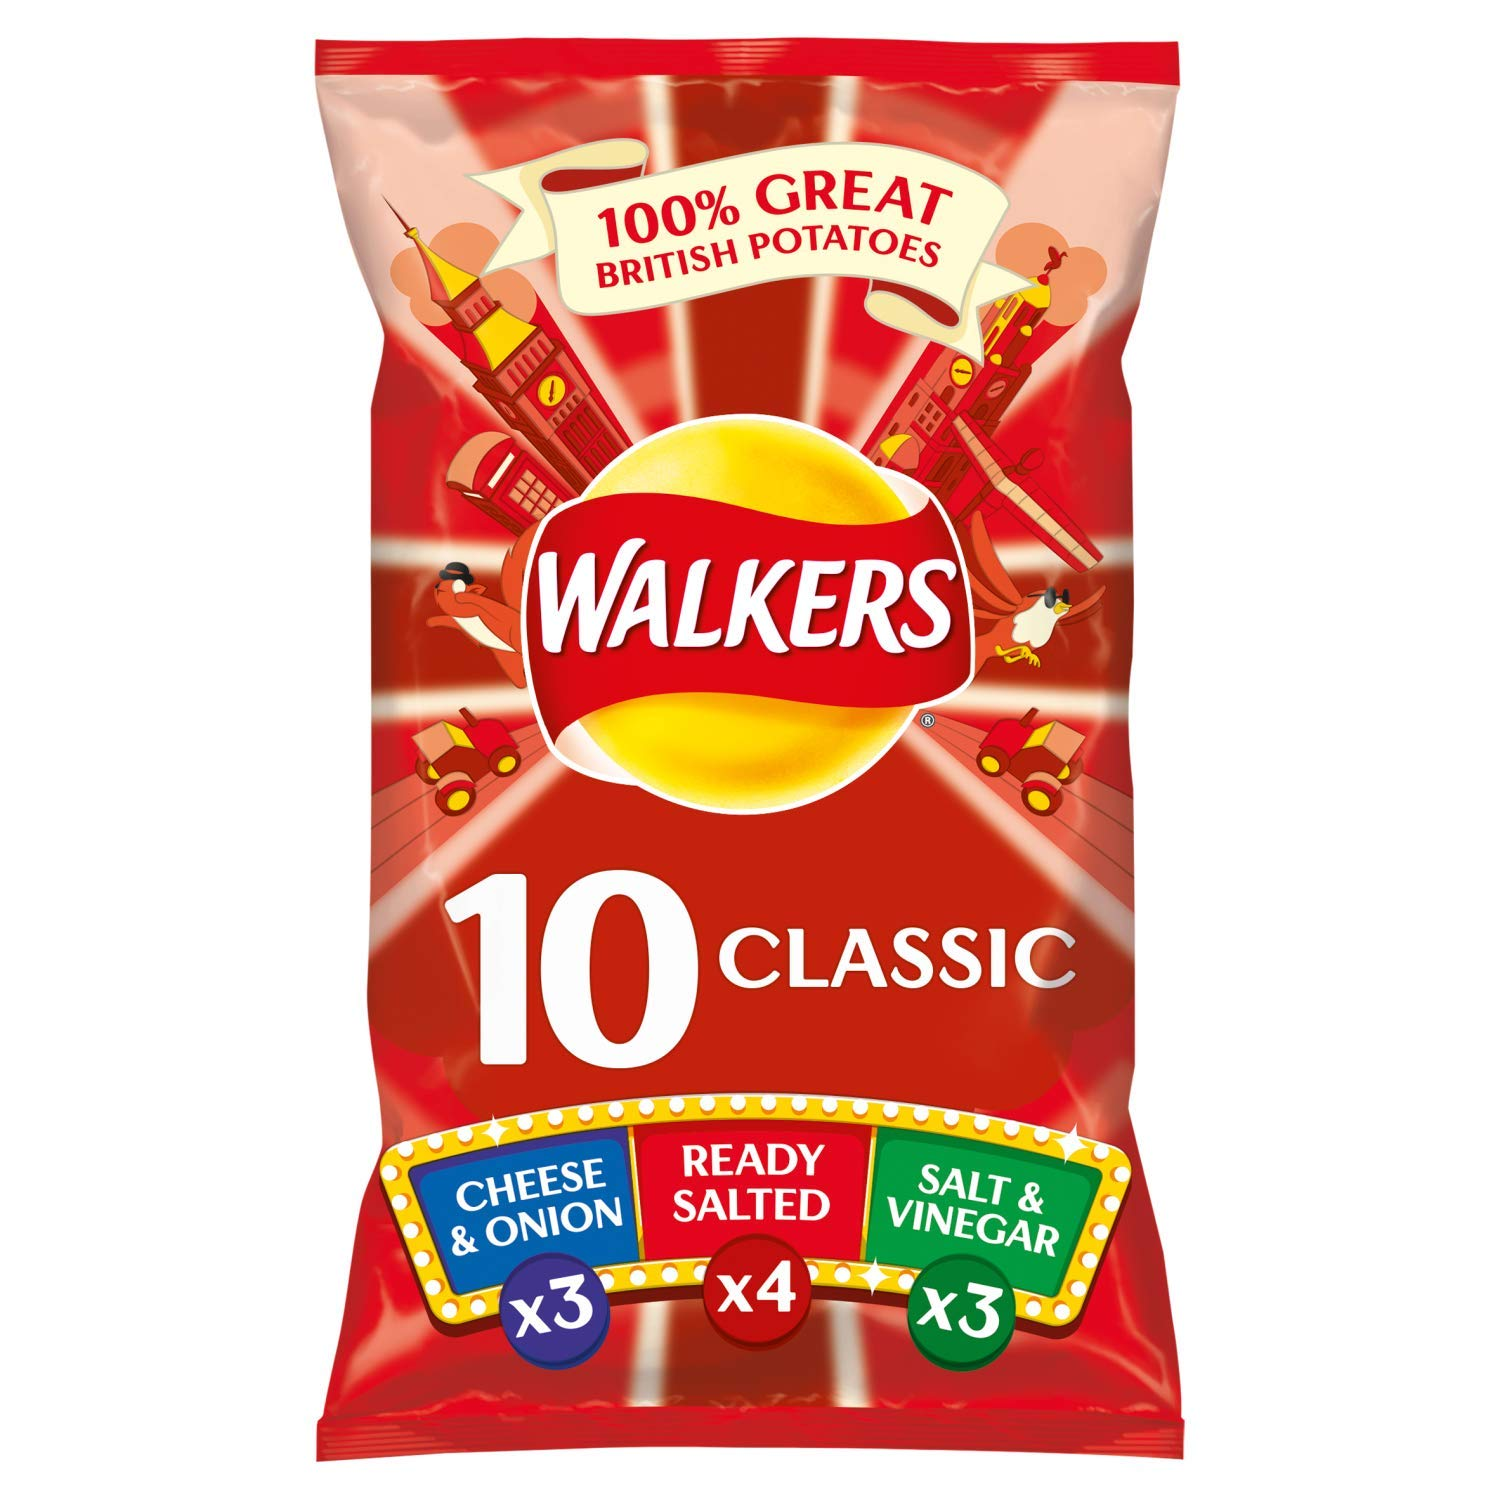 Walkers Classic Variety Case Pack Crisps, 10 x 25 g (Case of 10)